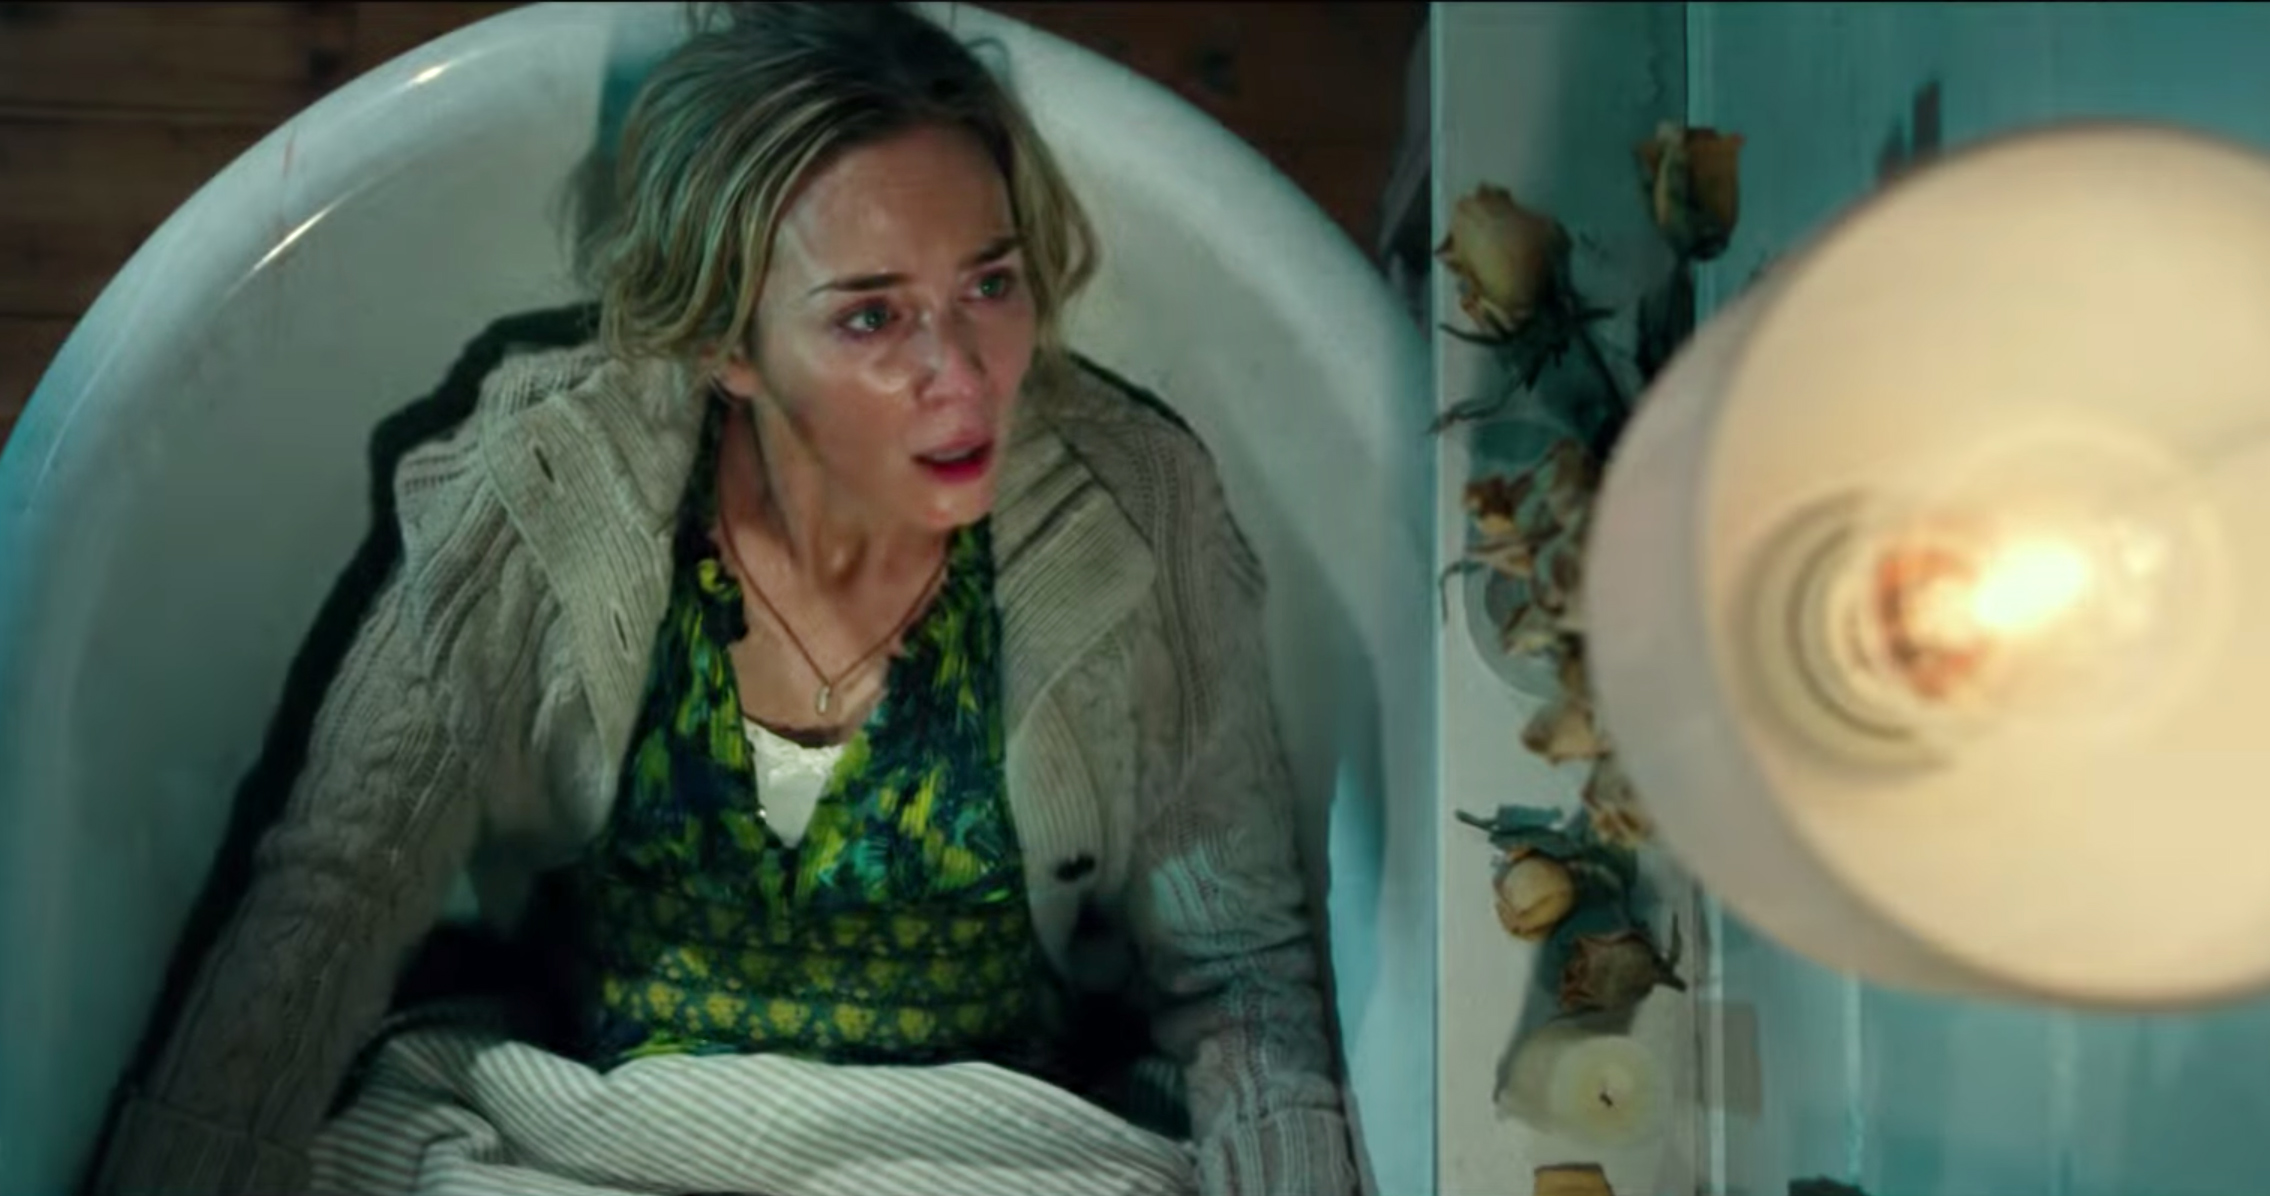 'A Quiet Place 2' begins filming in Western NY: See photos